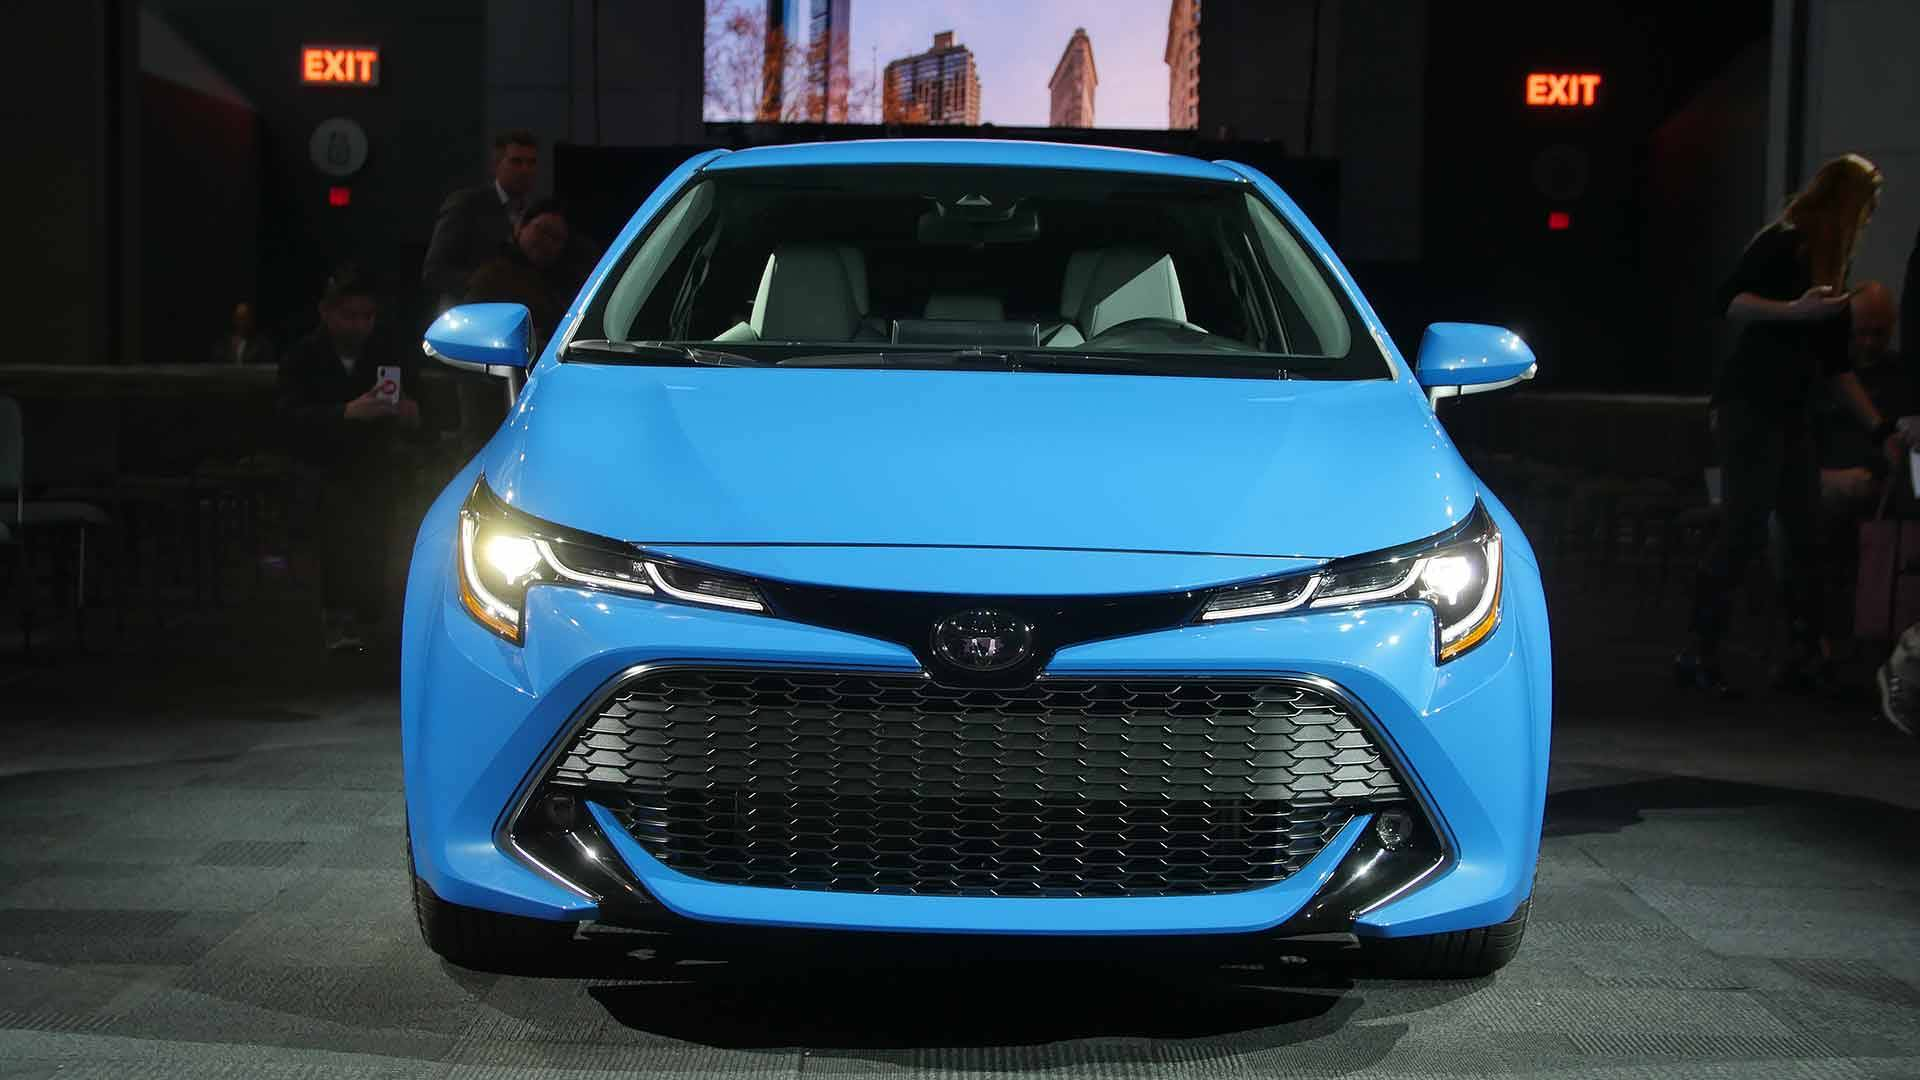 2019/12th Gen Toyota Corolla Leaked - Page 10 - Toyota ...